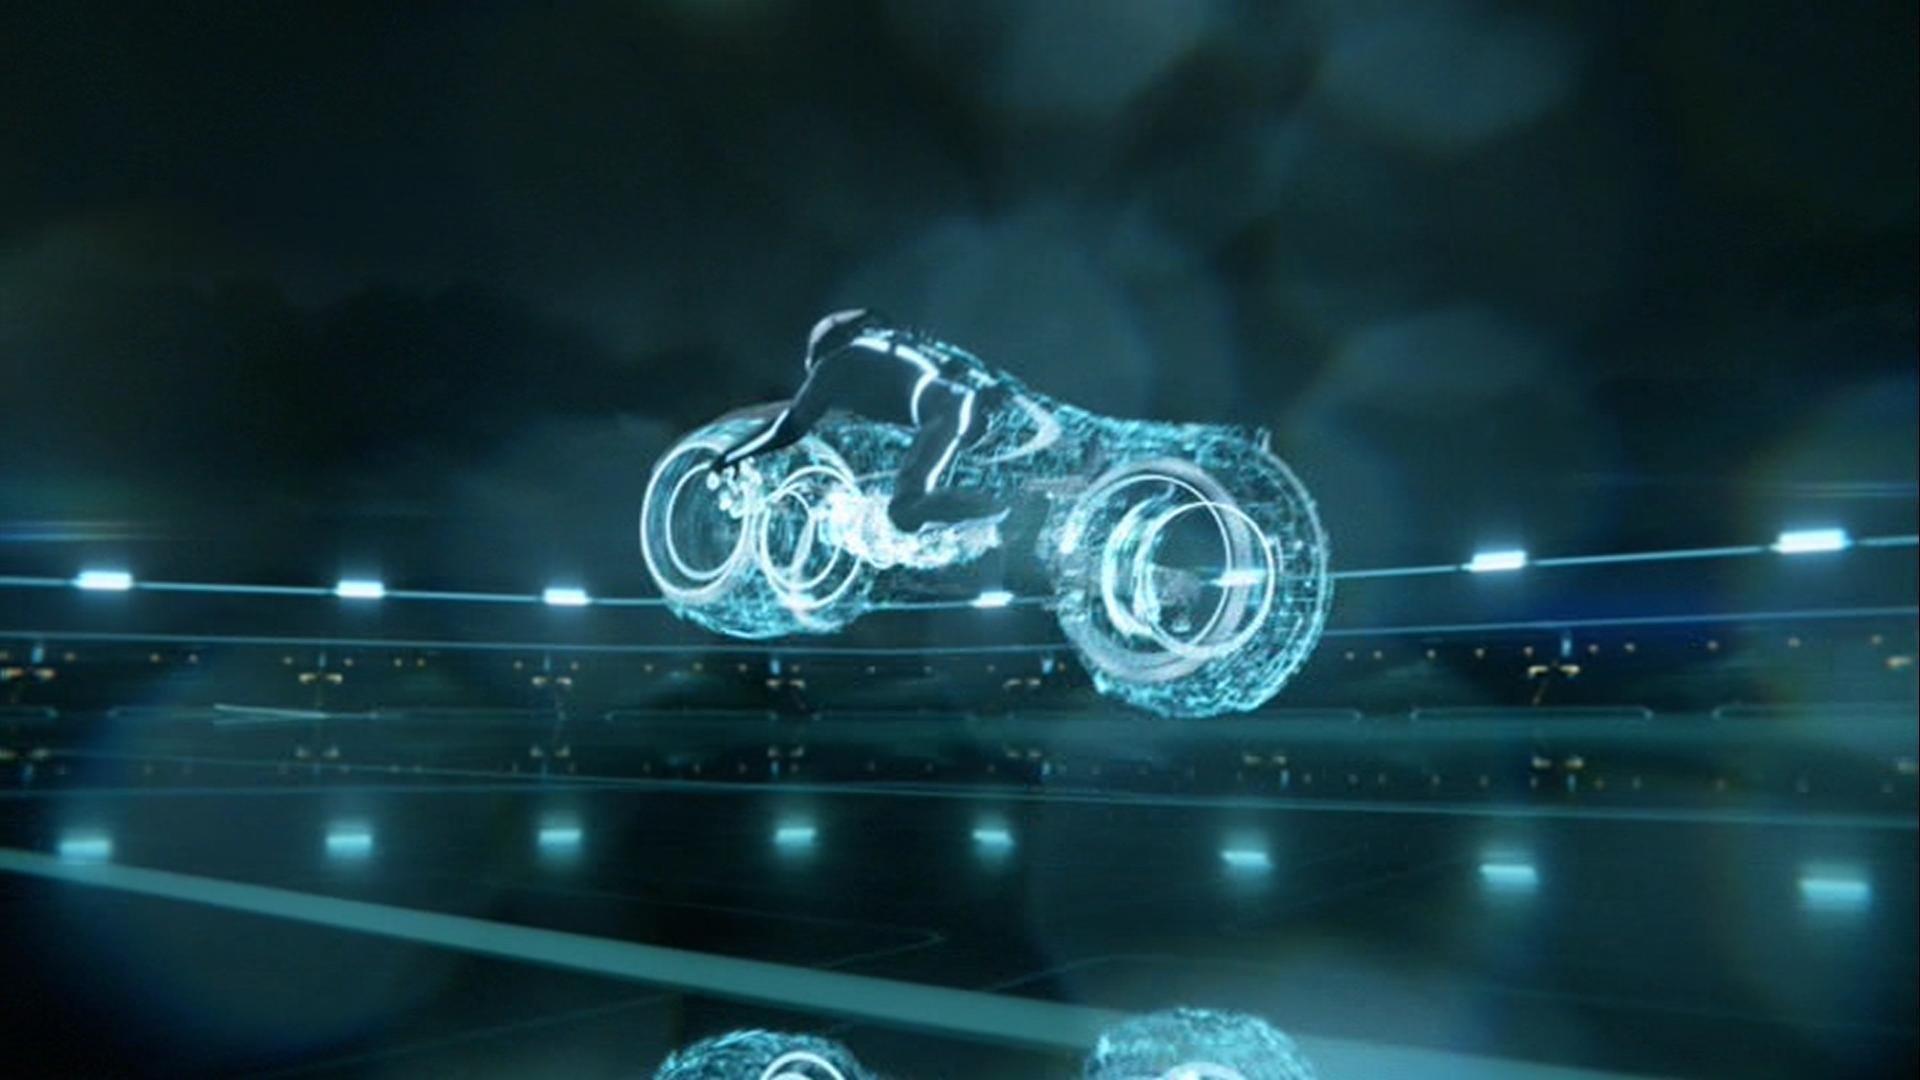 awesome tronlegacy wallpapers - photo #38